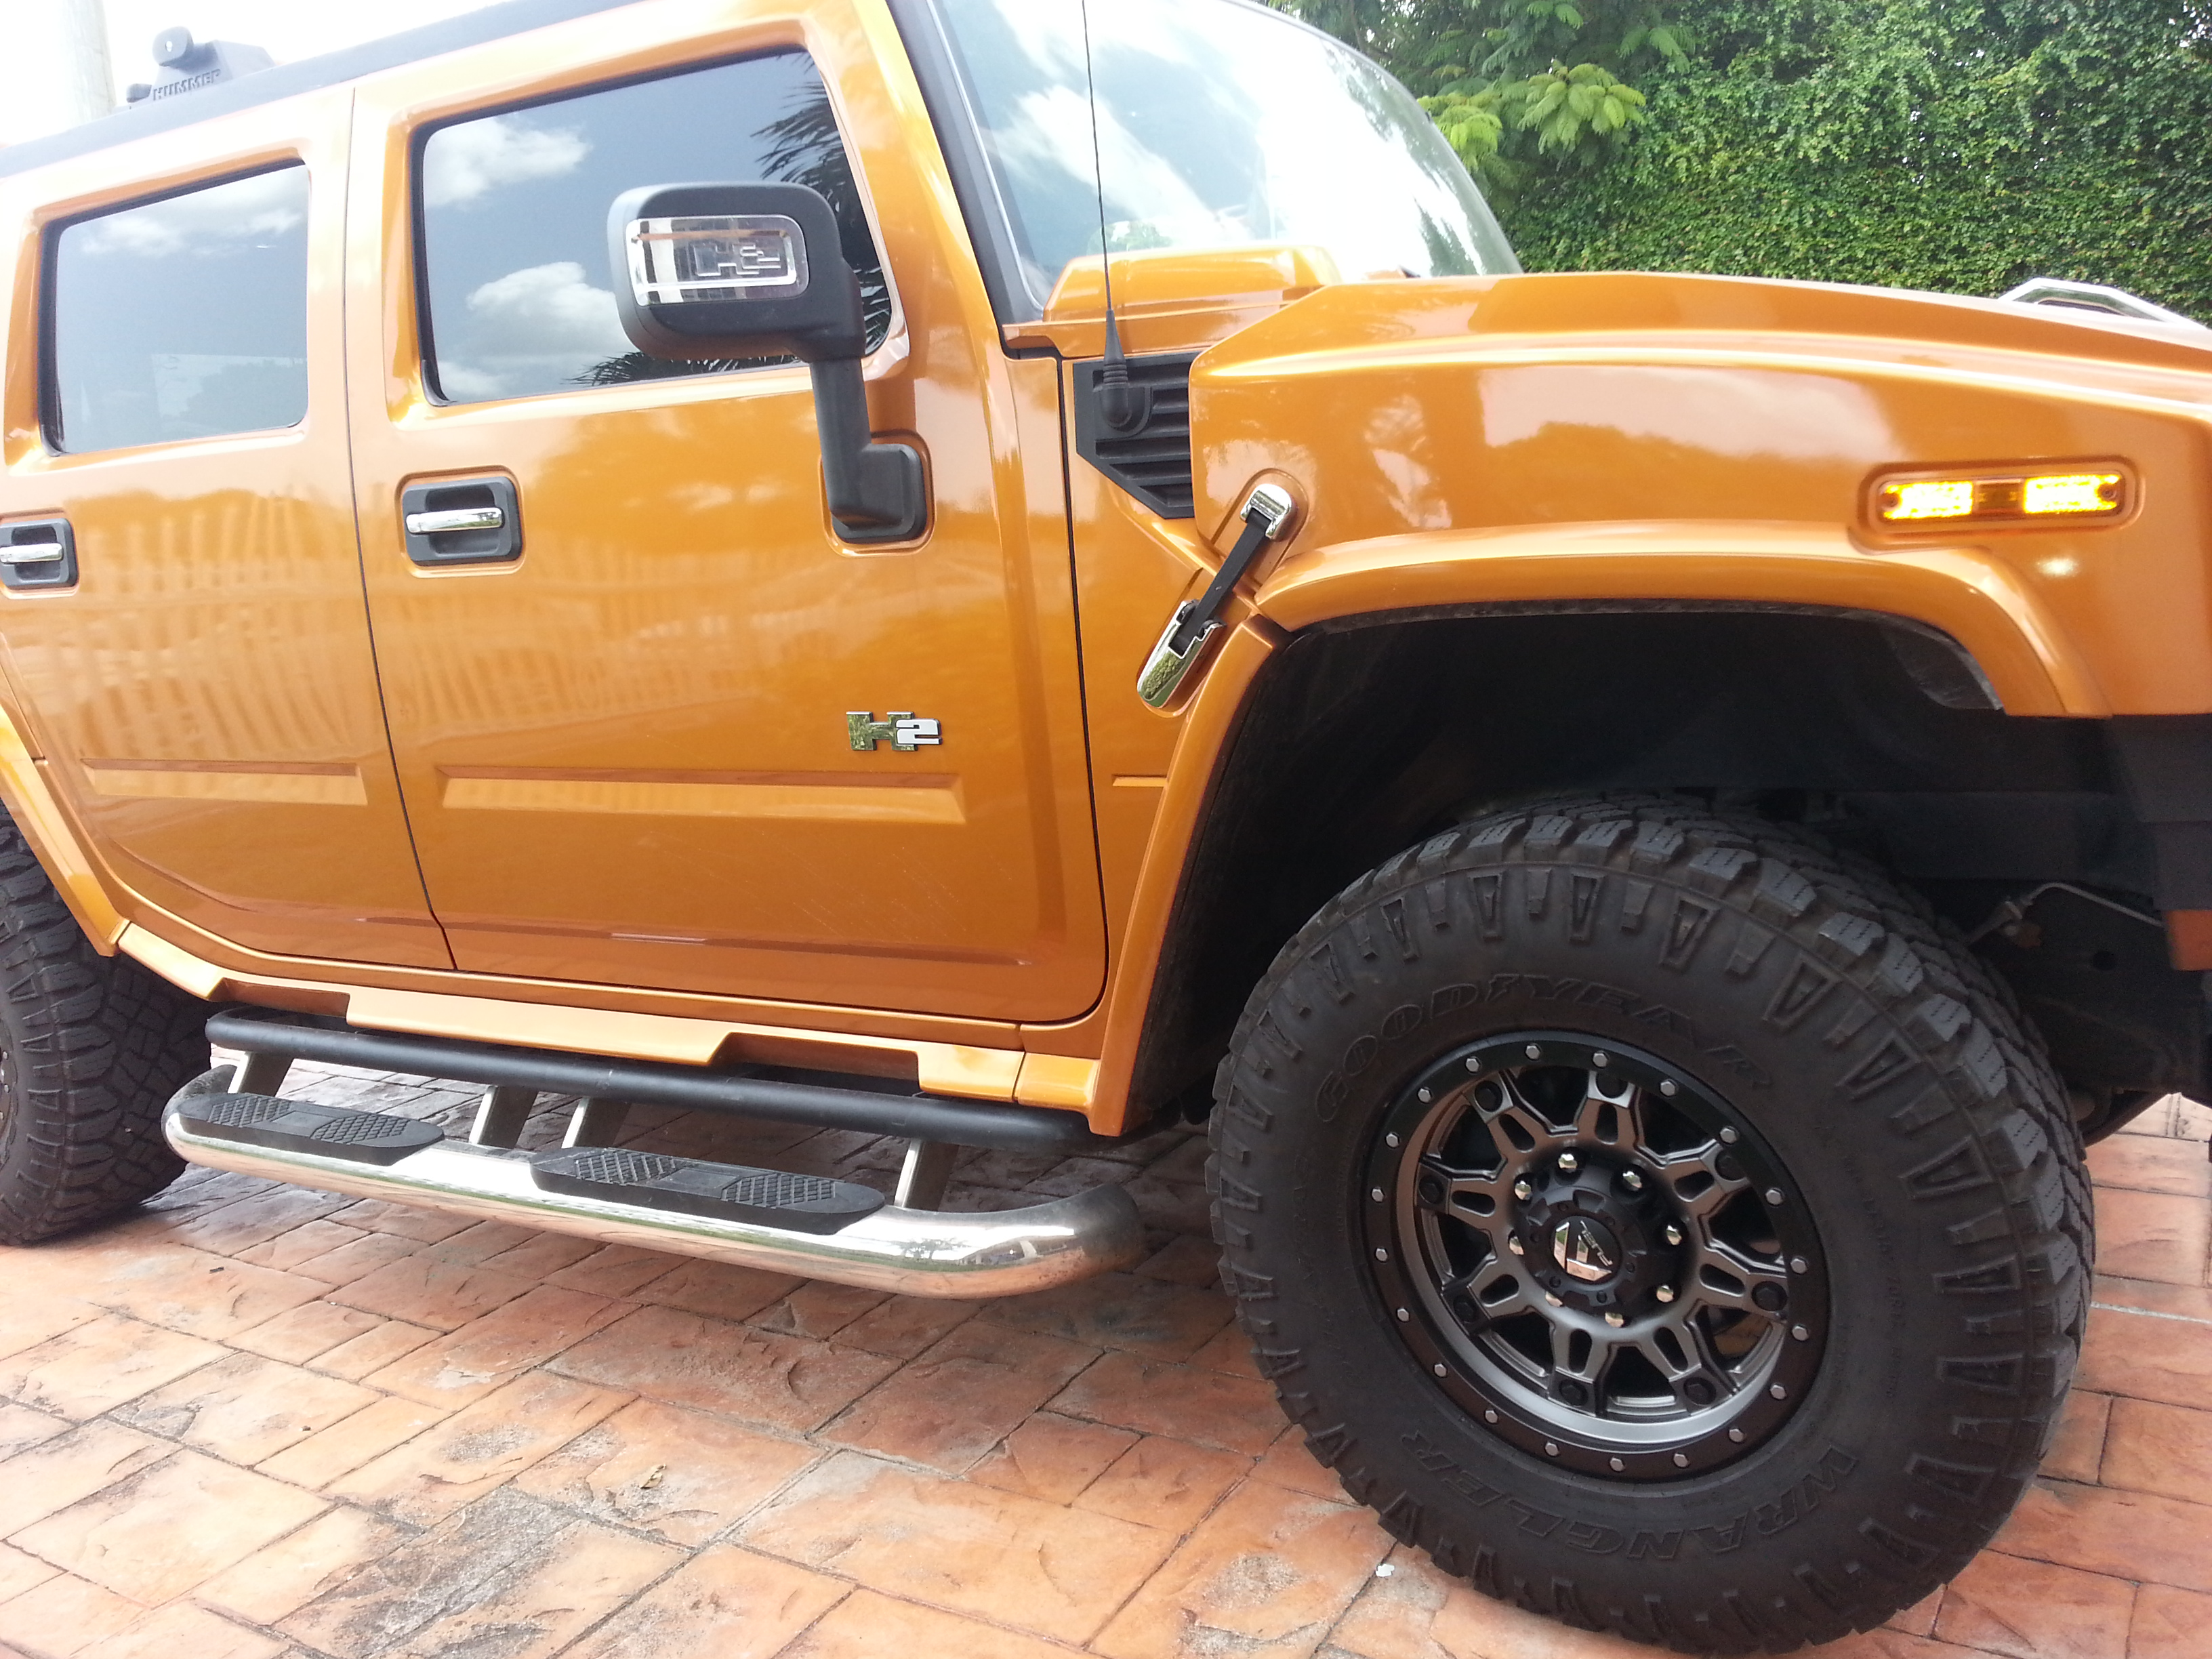 New wheels pics Hummer Forums Enthusiast Forum for Hummer Owners